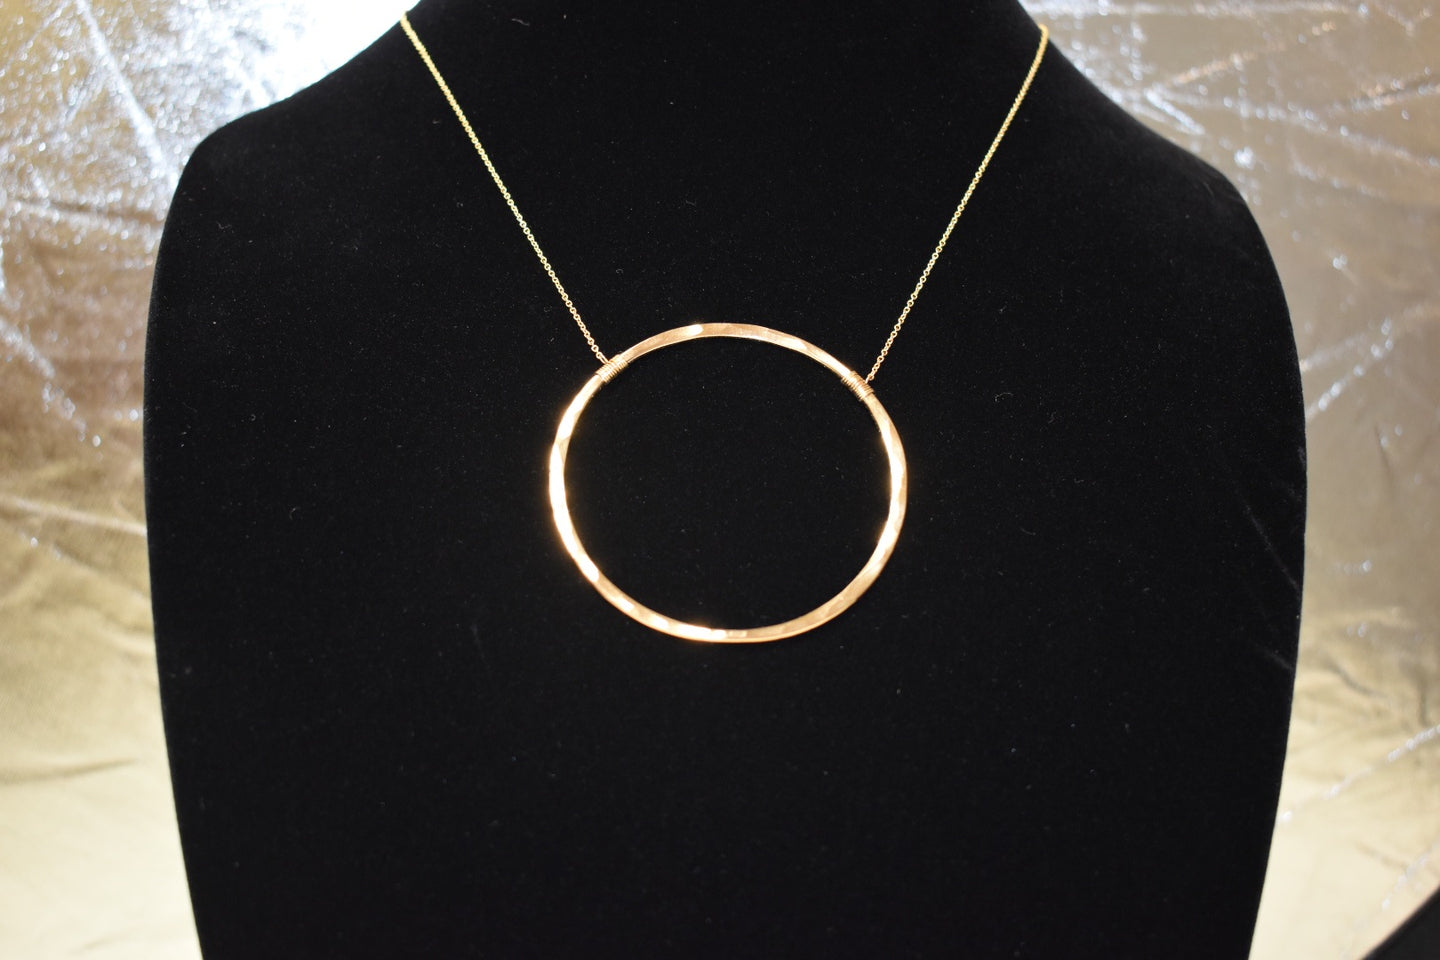 Amy Waltz Designs gold inner circle necklace